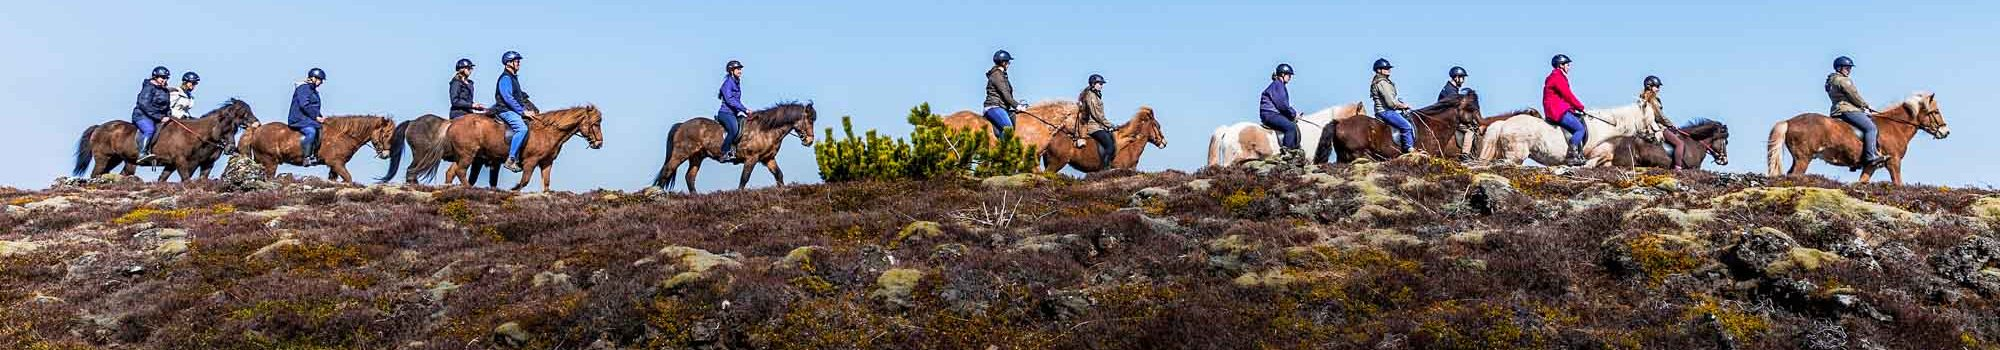 Horse riders group in Iceland